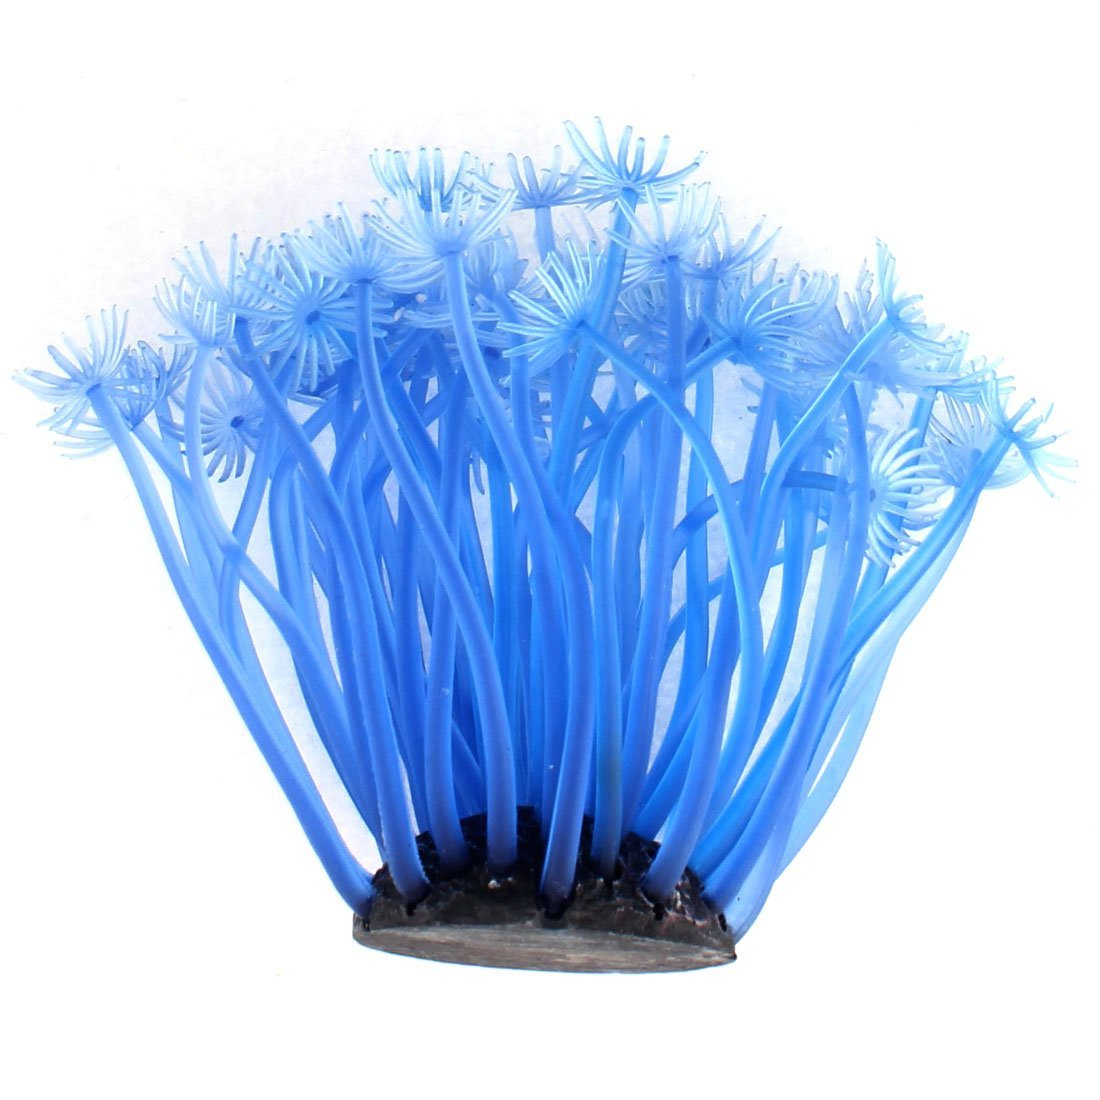 Amazon.com : eDealMax peces de acuario tanque Artificial Coral blando Planta decoración Azul del ornamento : Pet Supplies